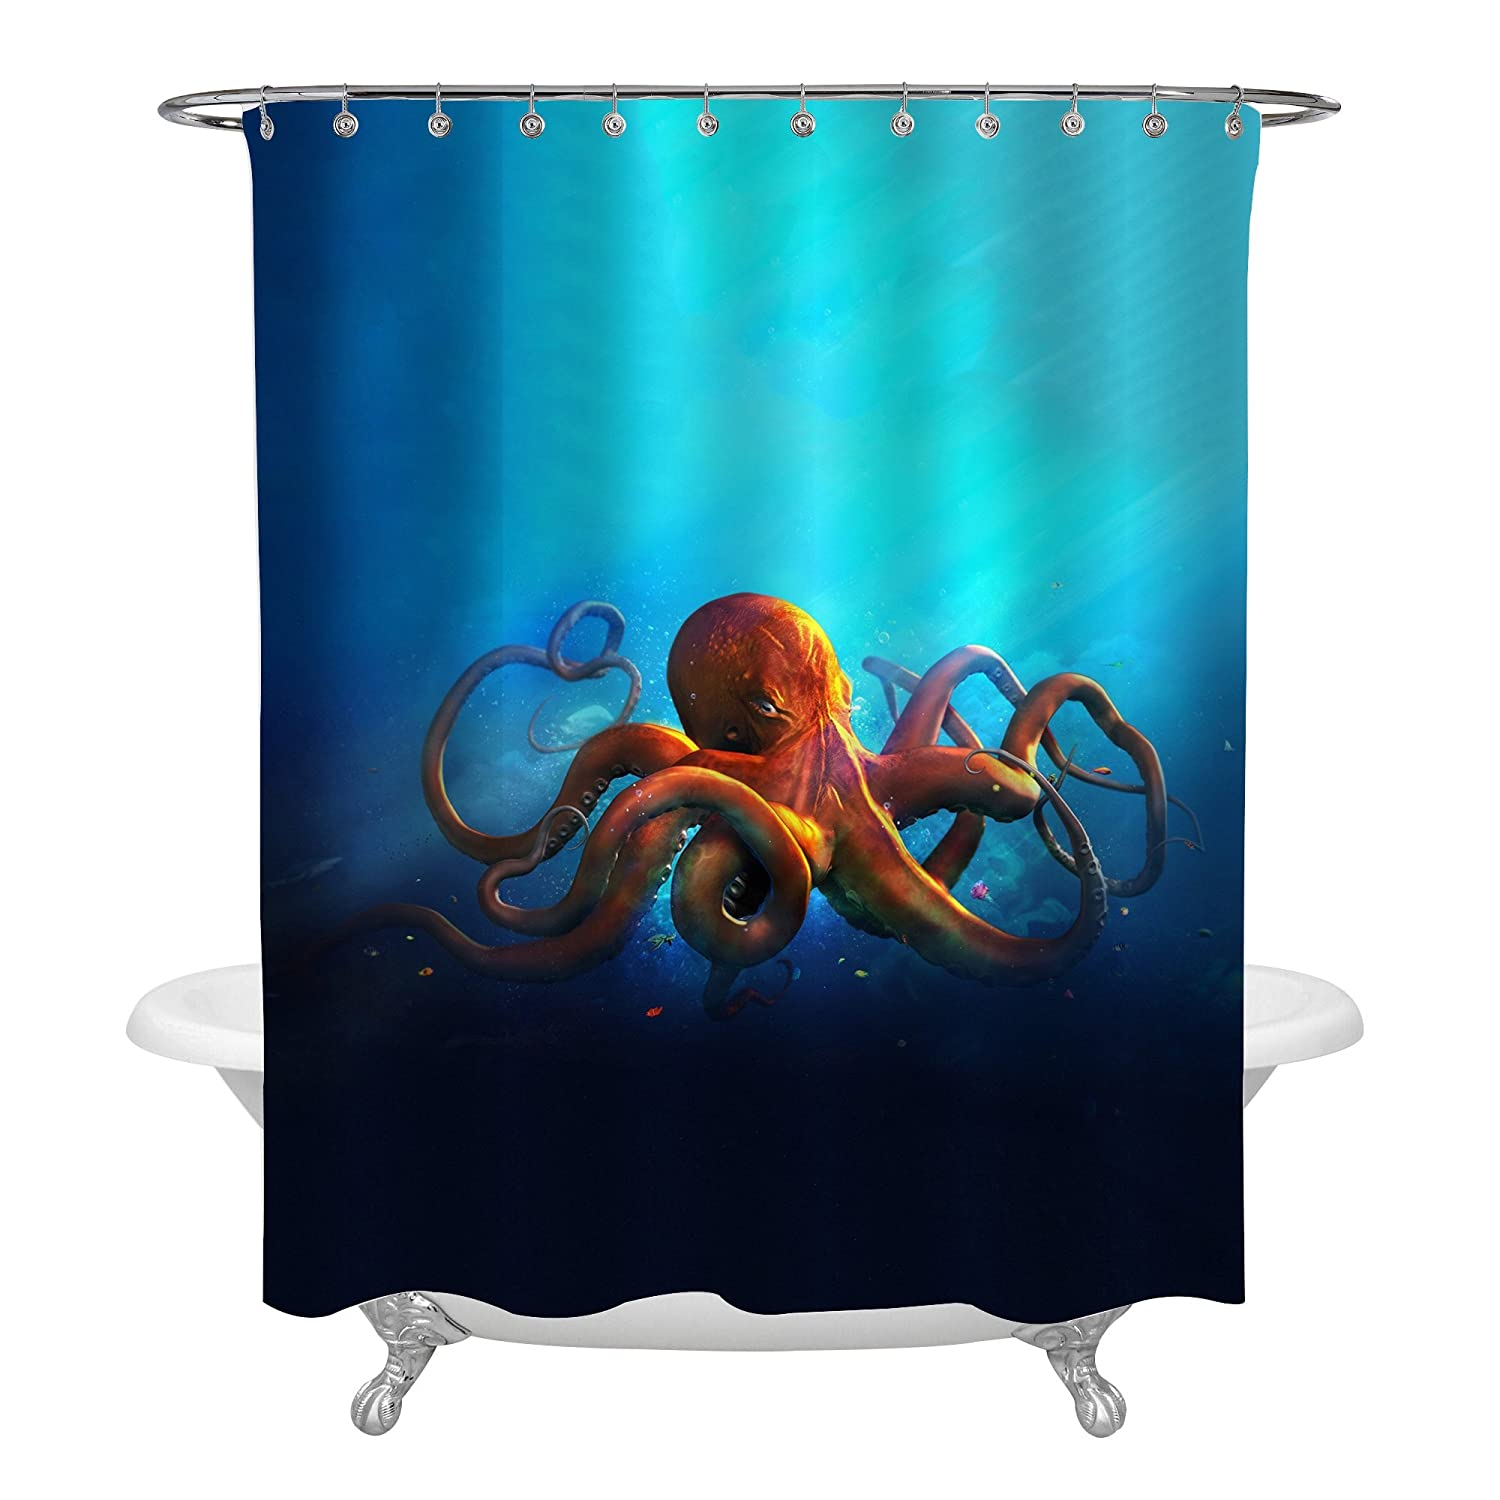 MitoVilla Ocean Life Orange Octopus Shower Curtain Vintage Style Aquatic Animal On Blue Background Kraken Tentacle Bathroom Accessories Creative Gifts For